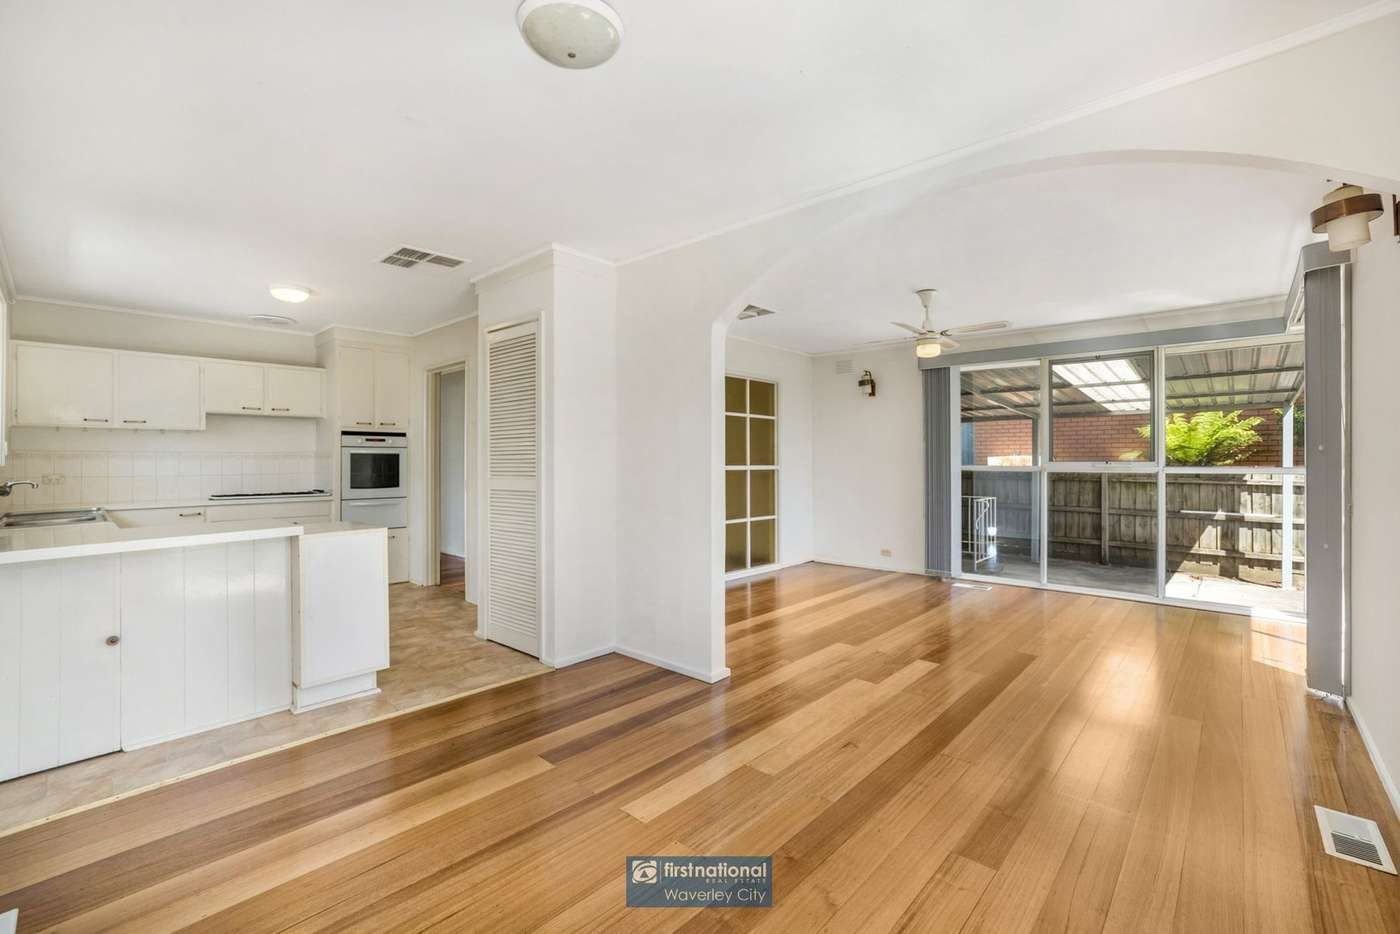 Fifth view of Homely house listing, 4 Redfern Crescent, Mulgrave VIC 3170